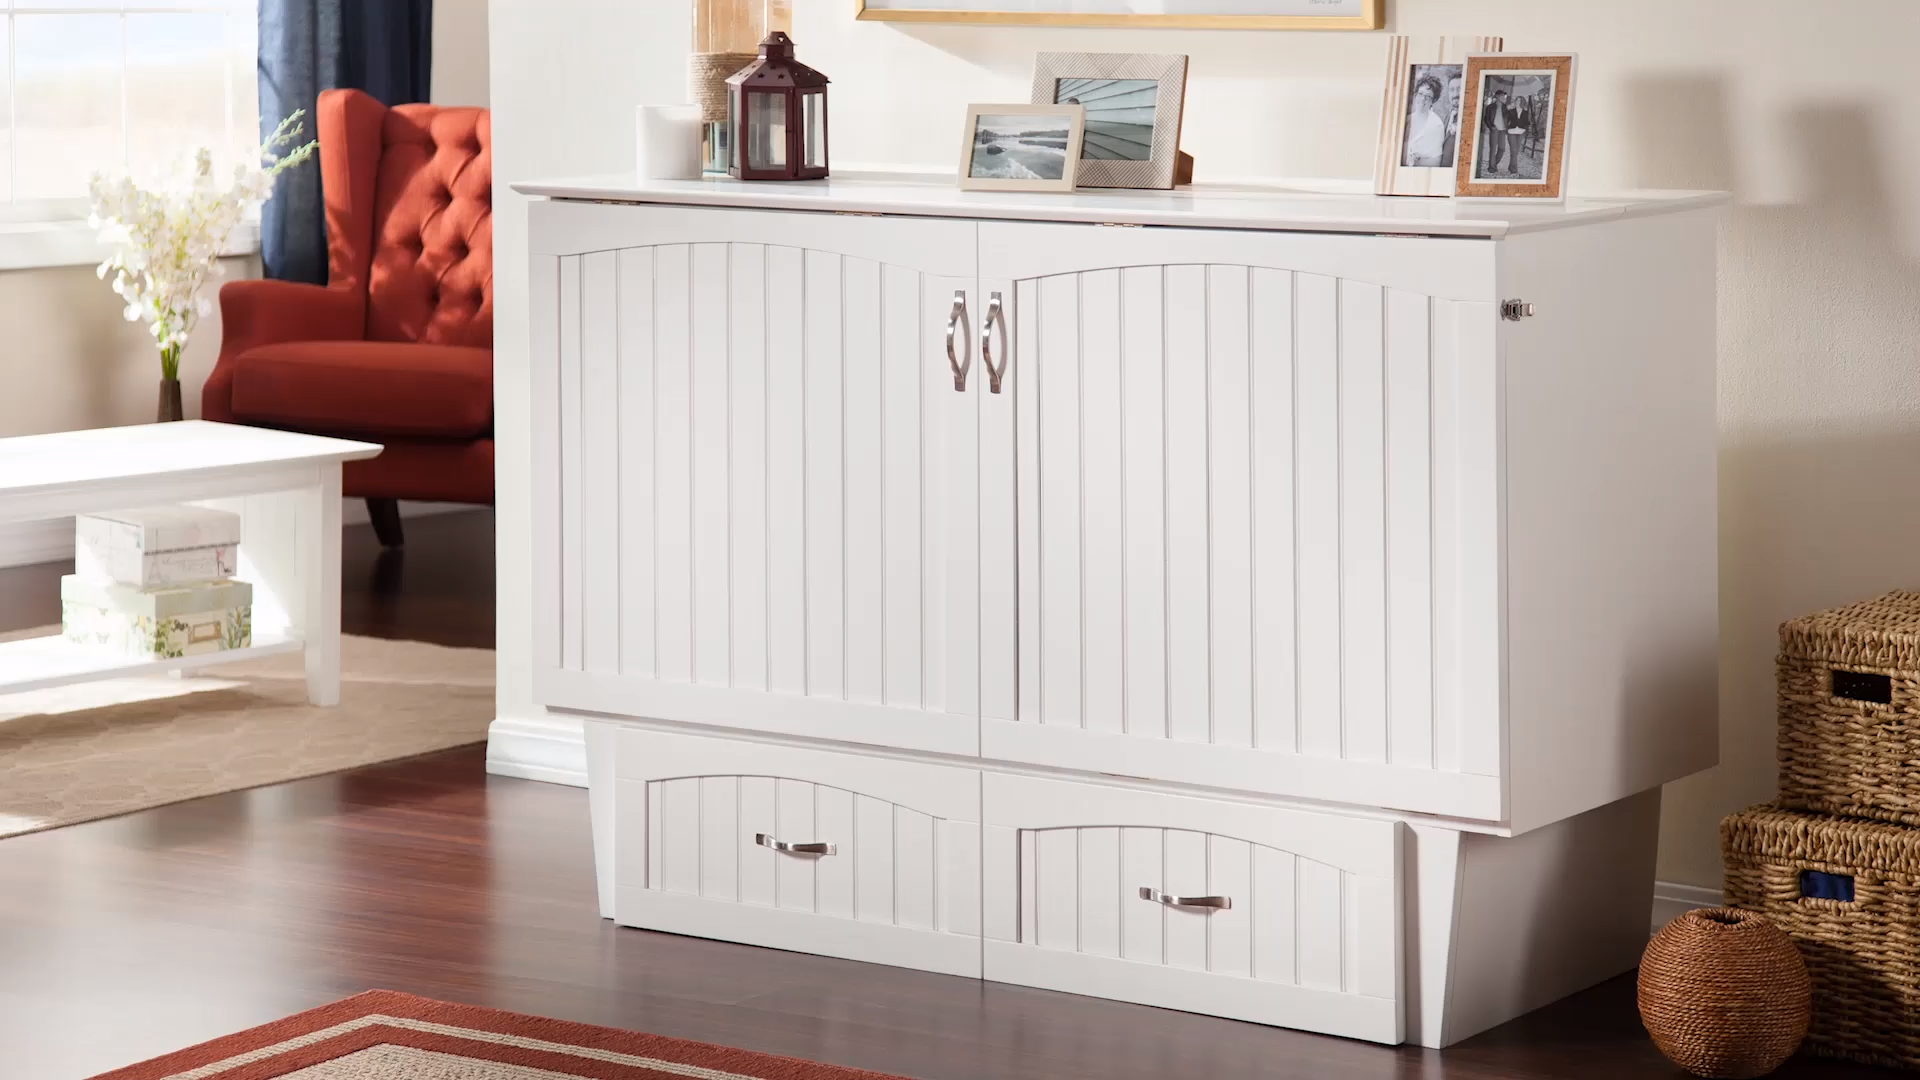 Skip the guest room, buy a Murphy Bed: a comfortable twin or queen sized bed tucked away inside an elegant, space-saving chest.